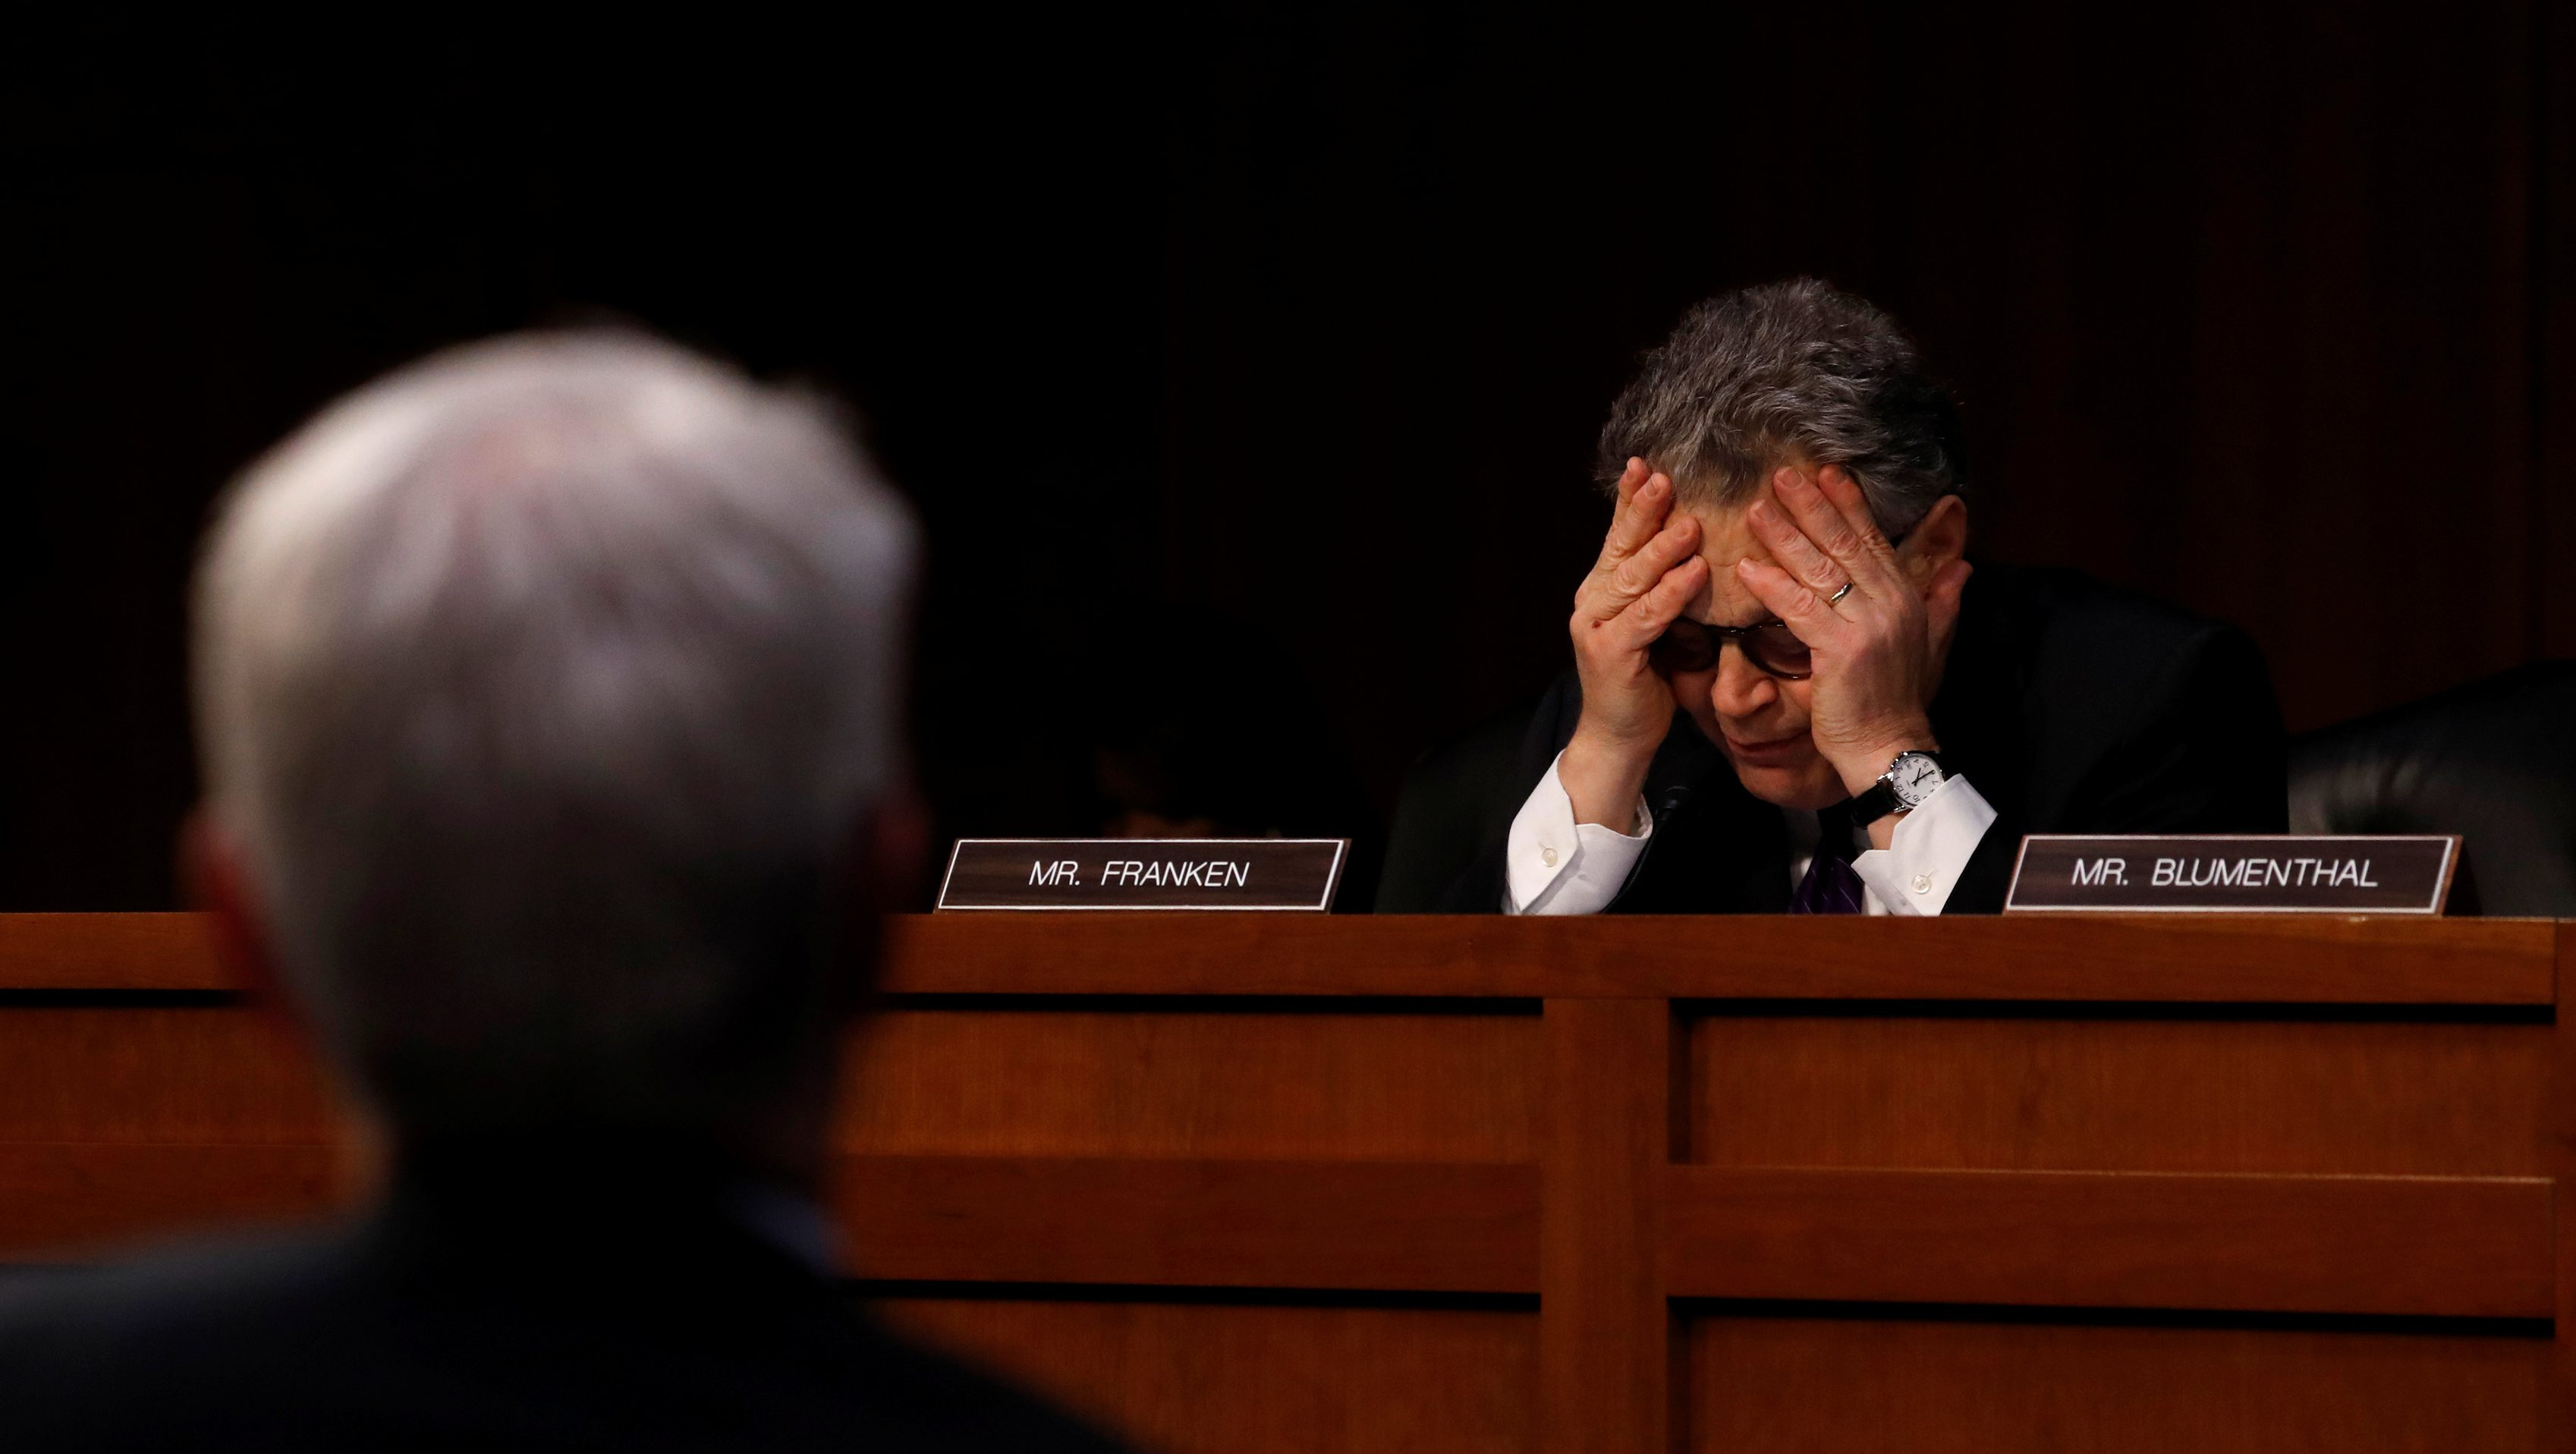 U.S. Senator Al Franken buries his head in his hands after an exchange with Facebook General Counsel Colin Stretch as he testifies before a Senate Judiciary Crime and Terrorism Subcommittee hearing on how Russia allegedly used their services to try to sway the 2016 U.S. elections, on Capitol Hill in Washington, U.S., October 31, 2017. REUTERS/Jonathan Ernst - RC1F6F3DB760